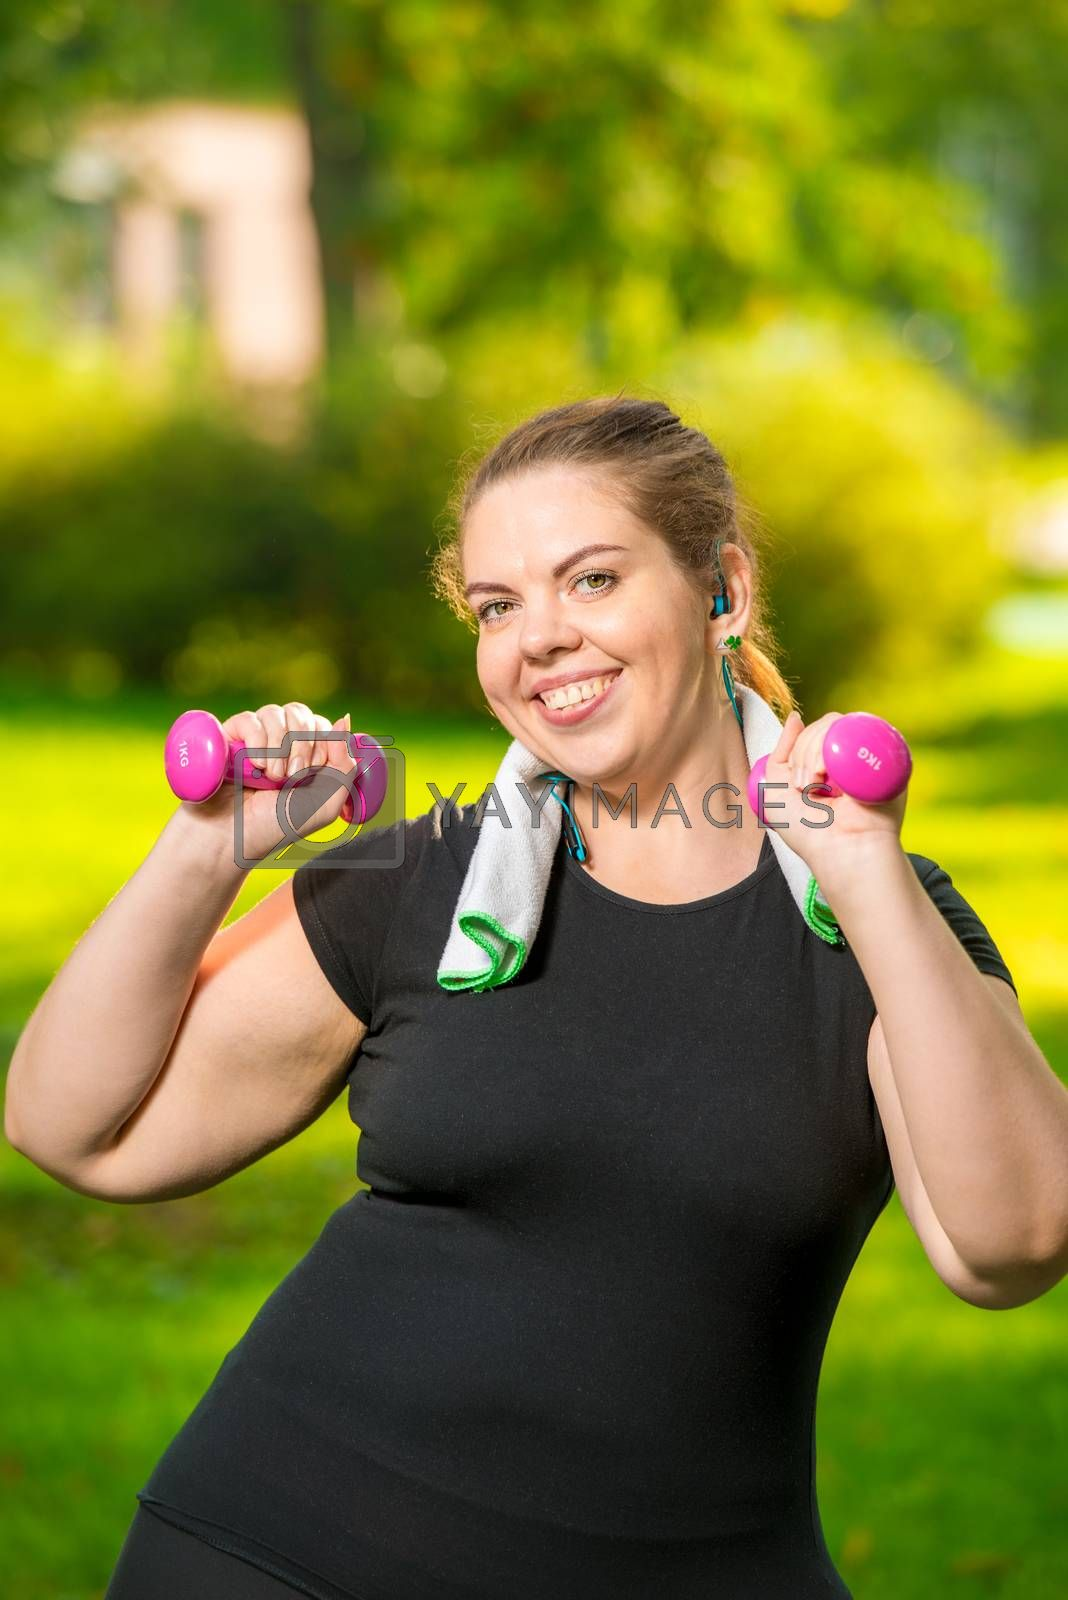 oversize woman in headphones with dumbbells in hand playing spor by Labunskiy K.